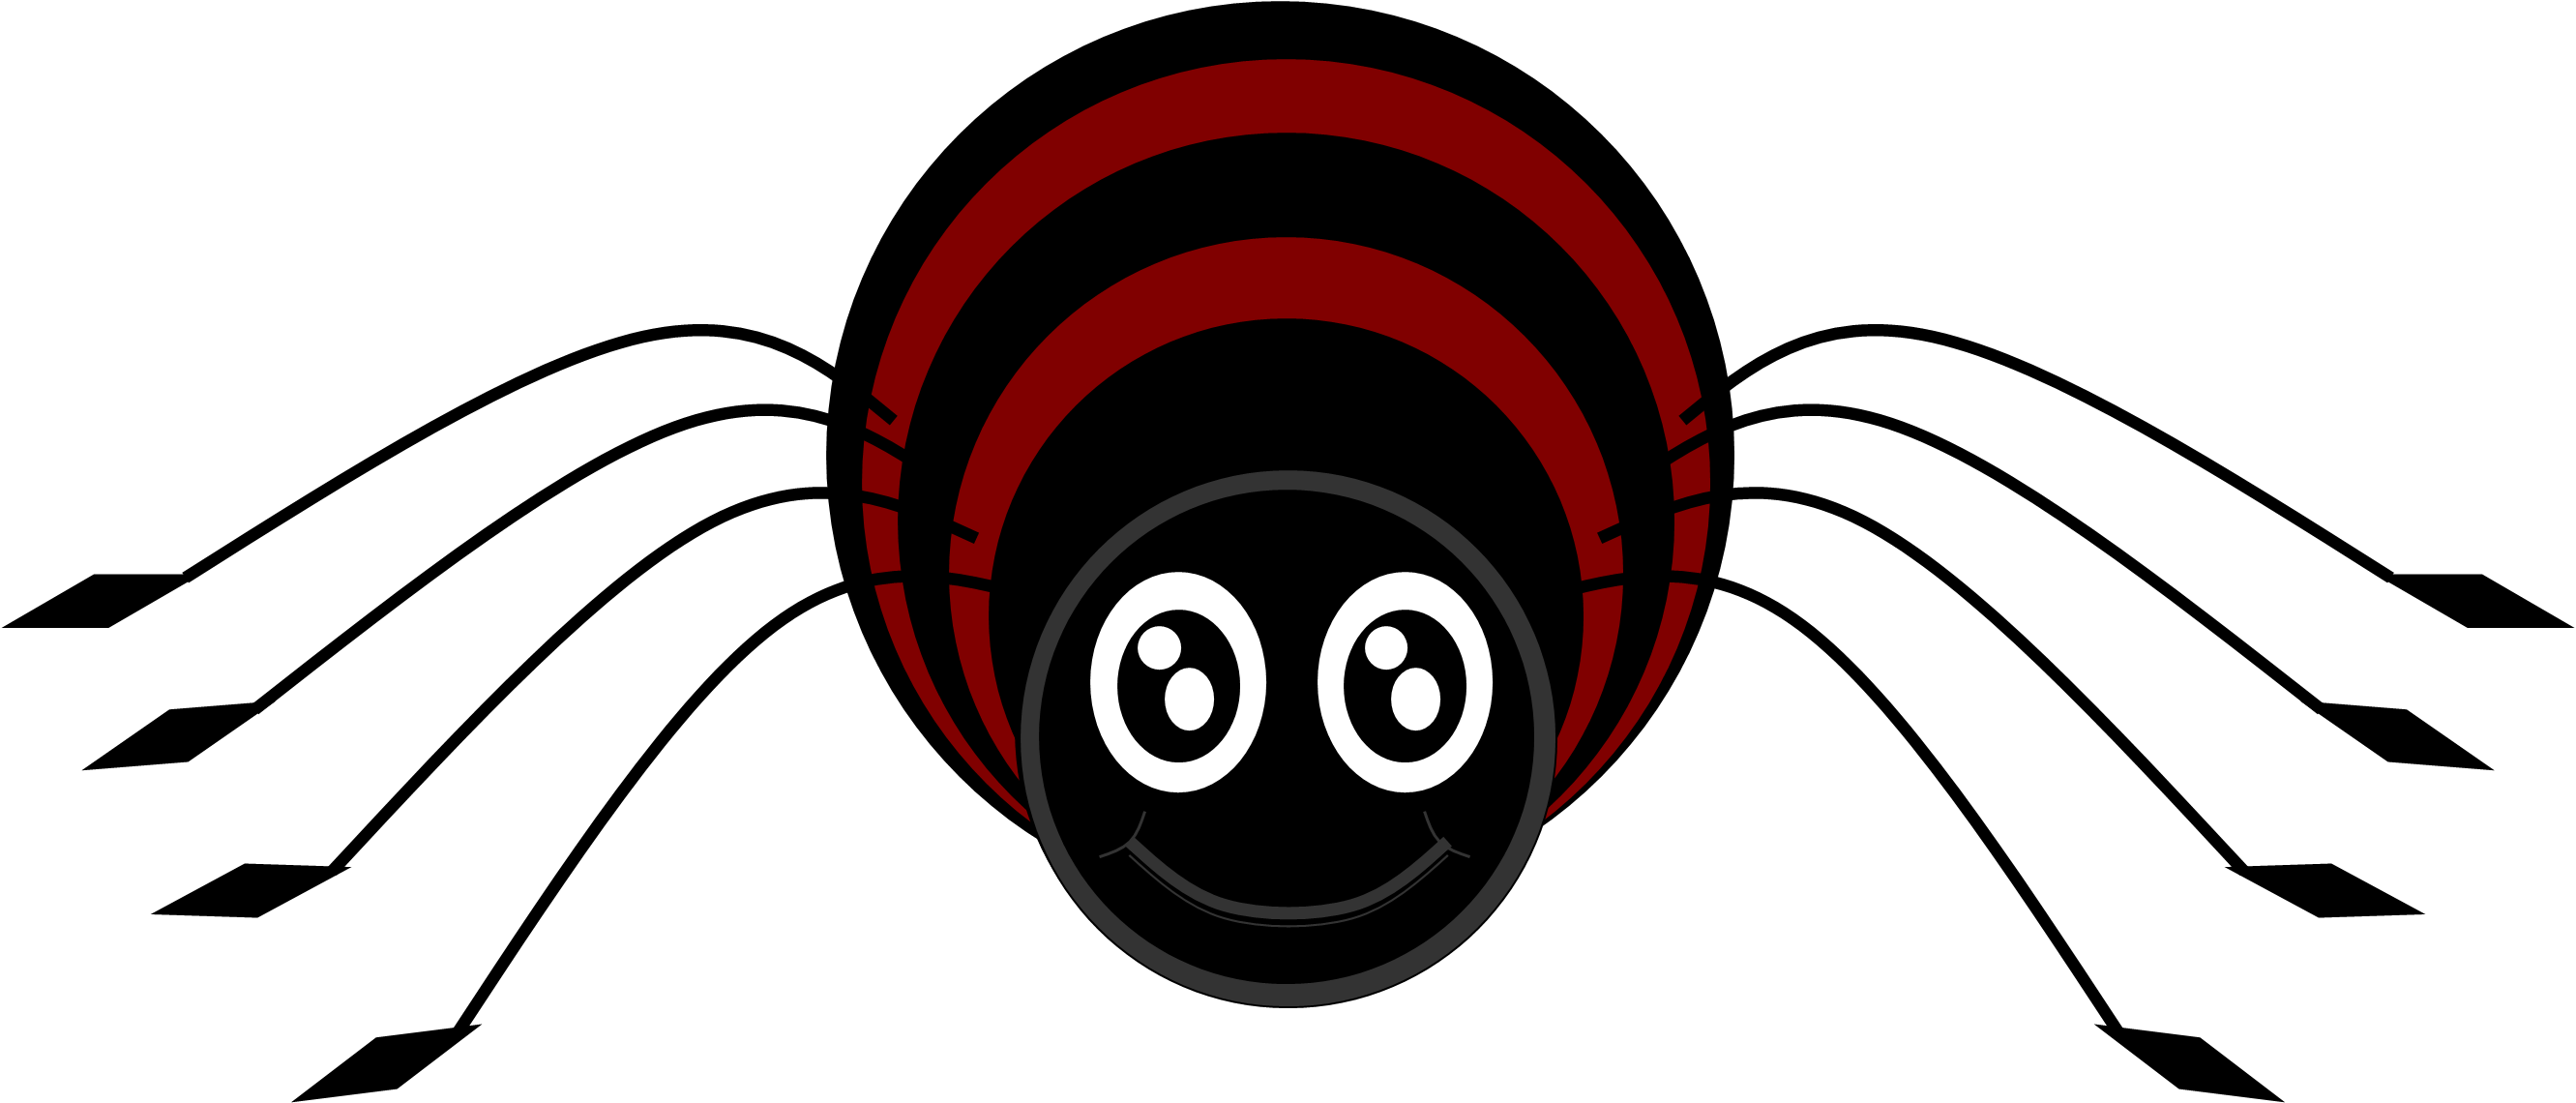 Spiders clipart cartoon. Spider free images at